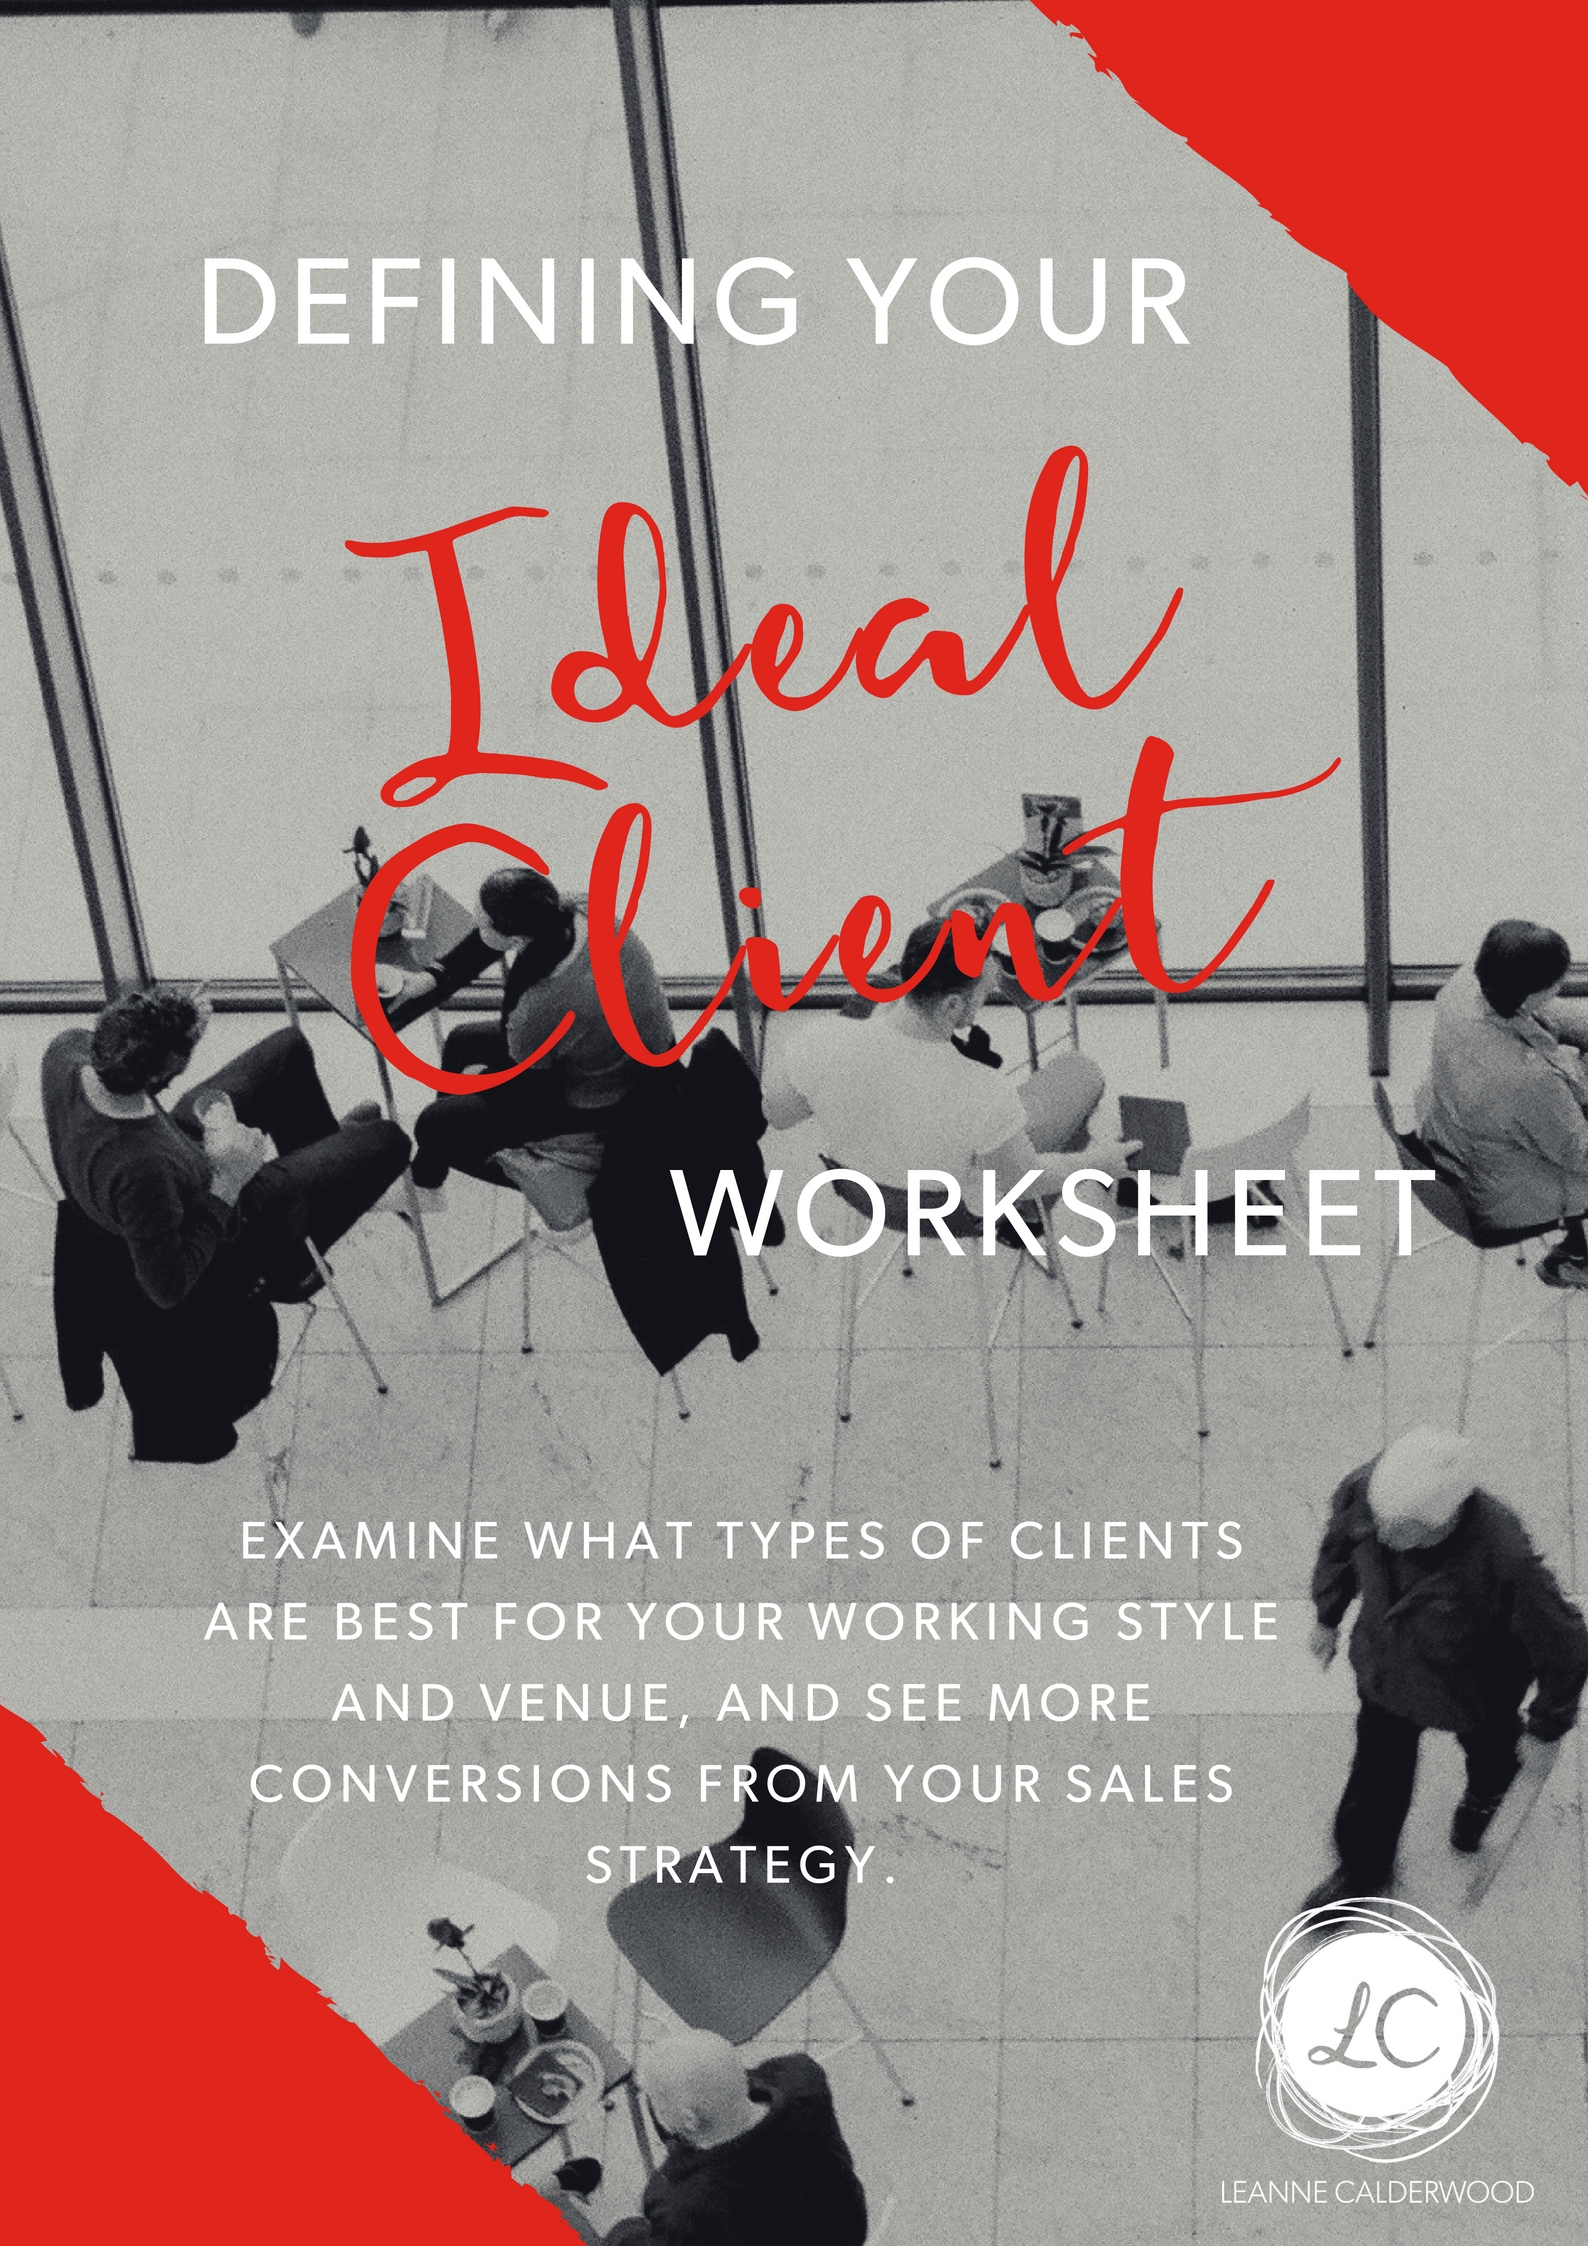 Defining Your Ideal Client Worksheet